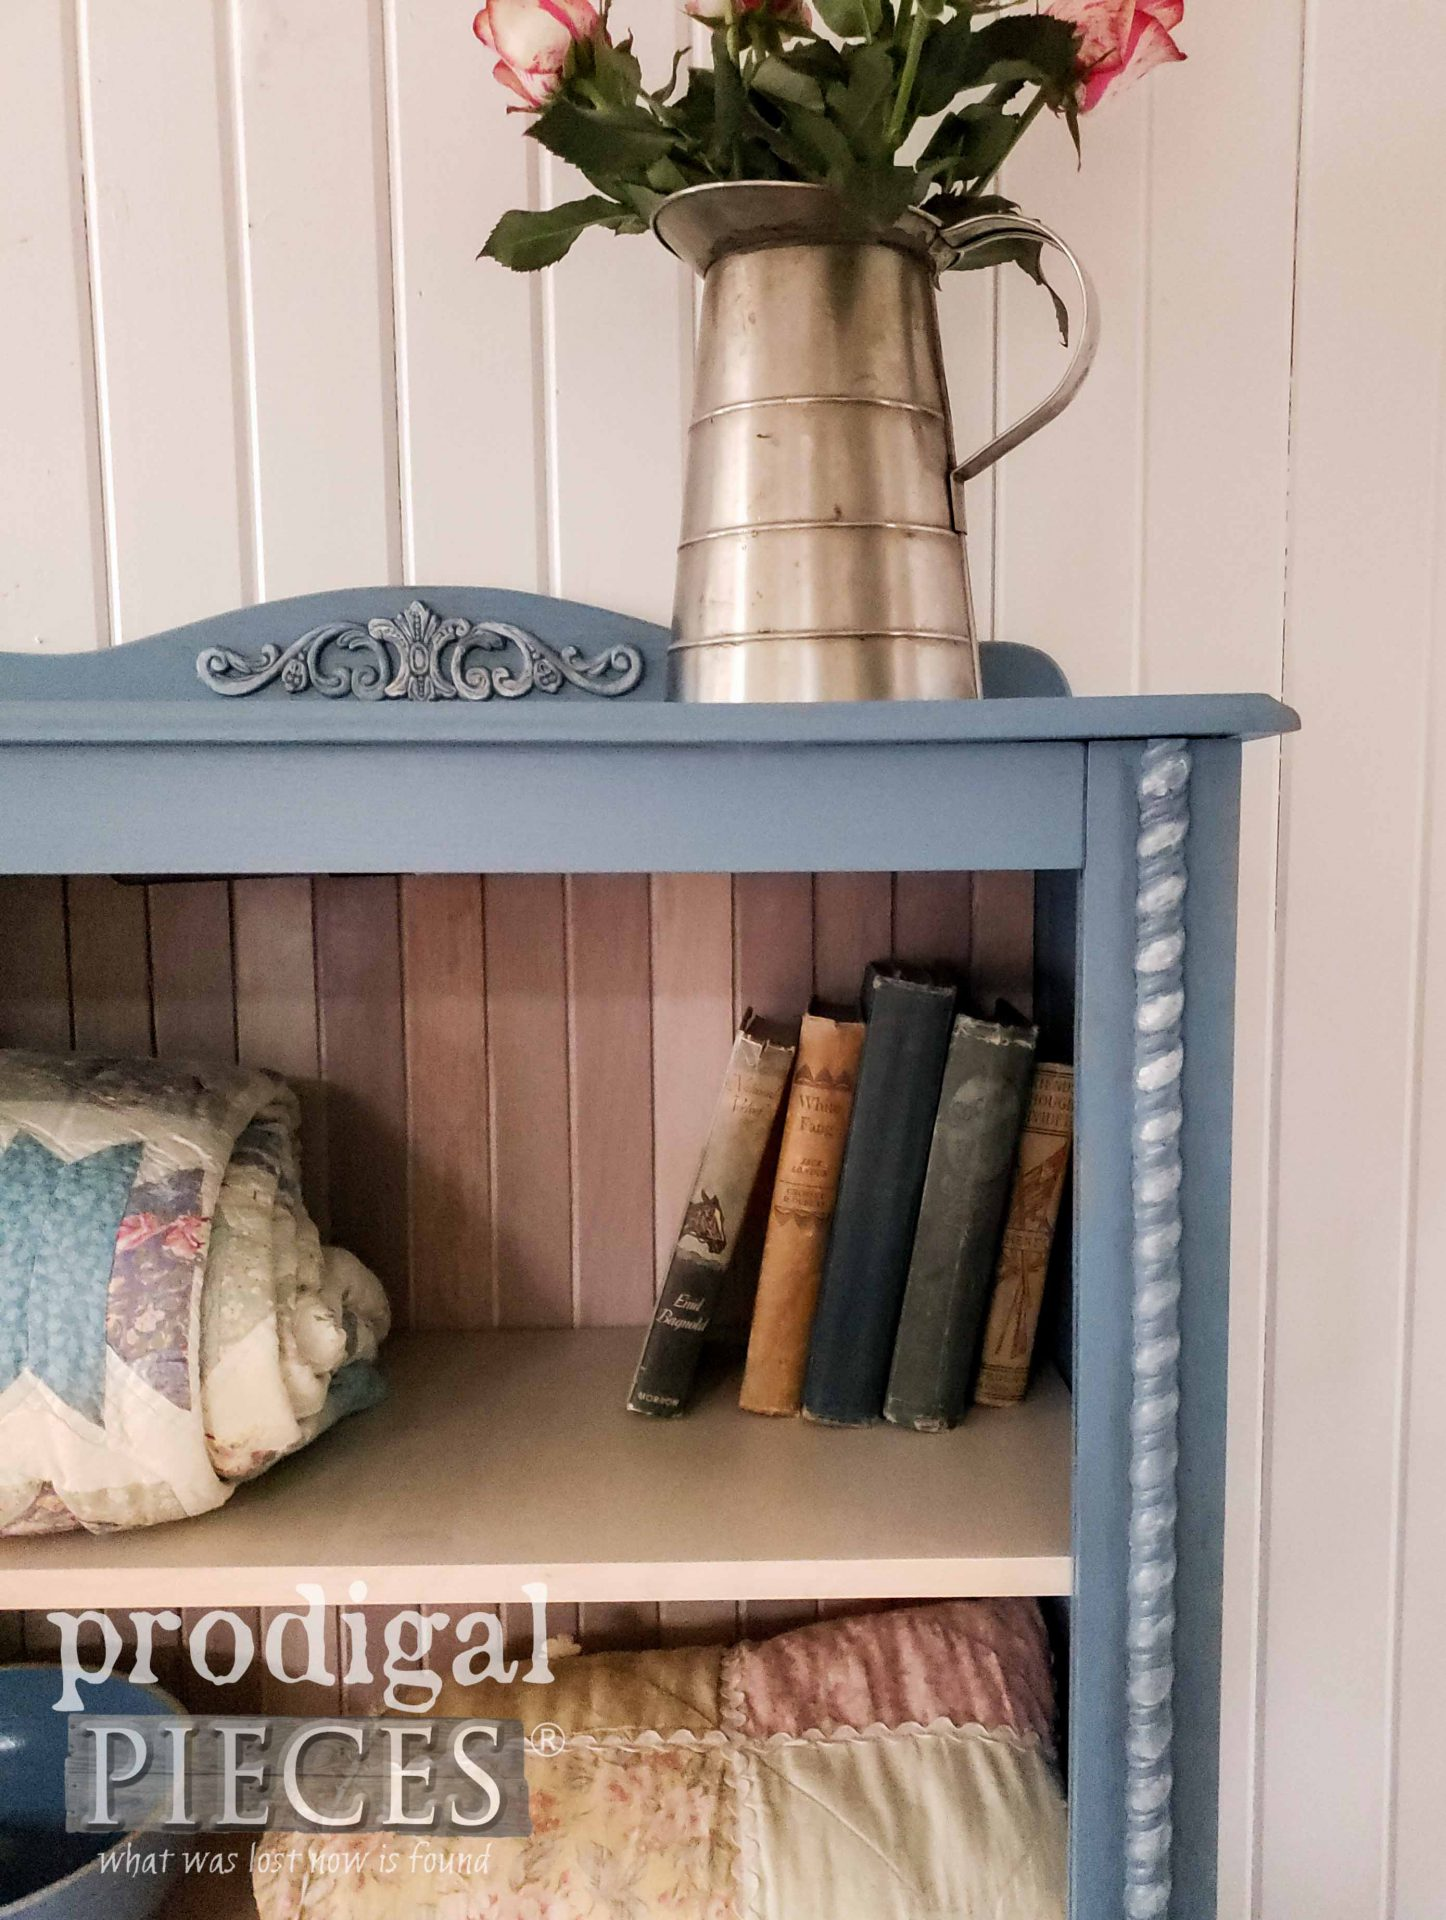 Lighted Cottage Cabinet Corner with Intricate Details by Larissa of Prodigal Pieces | prodigalpieces.com #prodigalpieces #furniture #home #homedecor